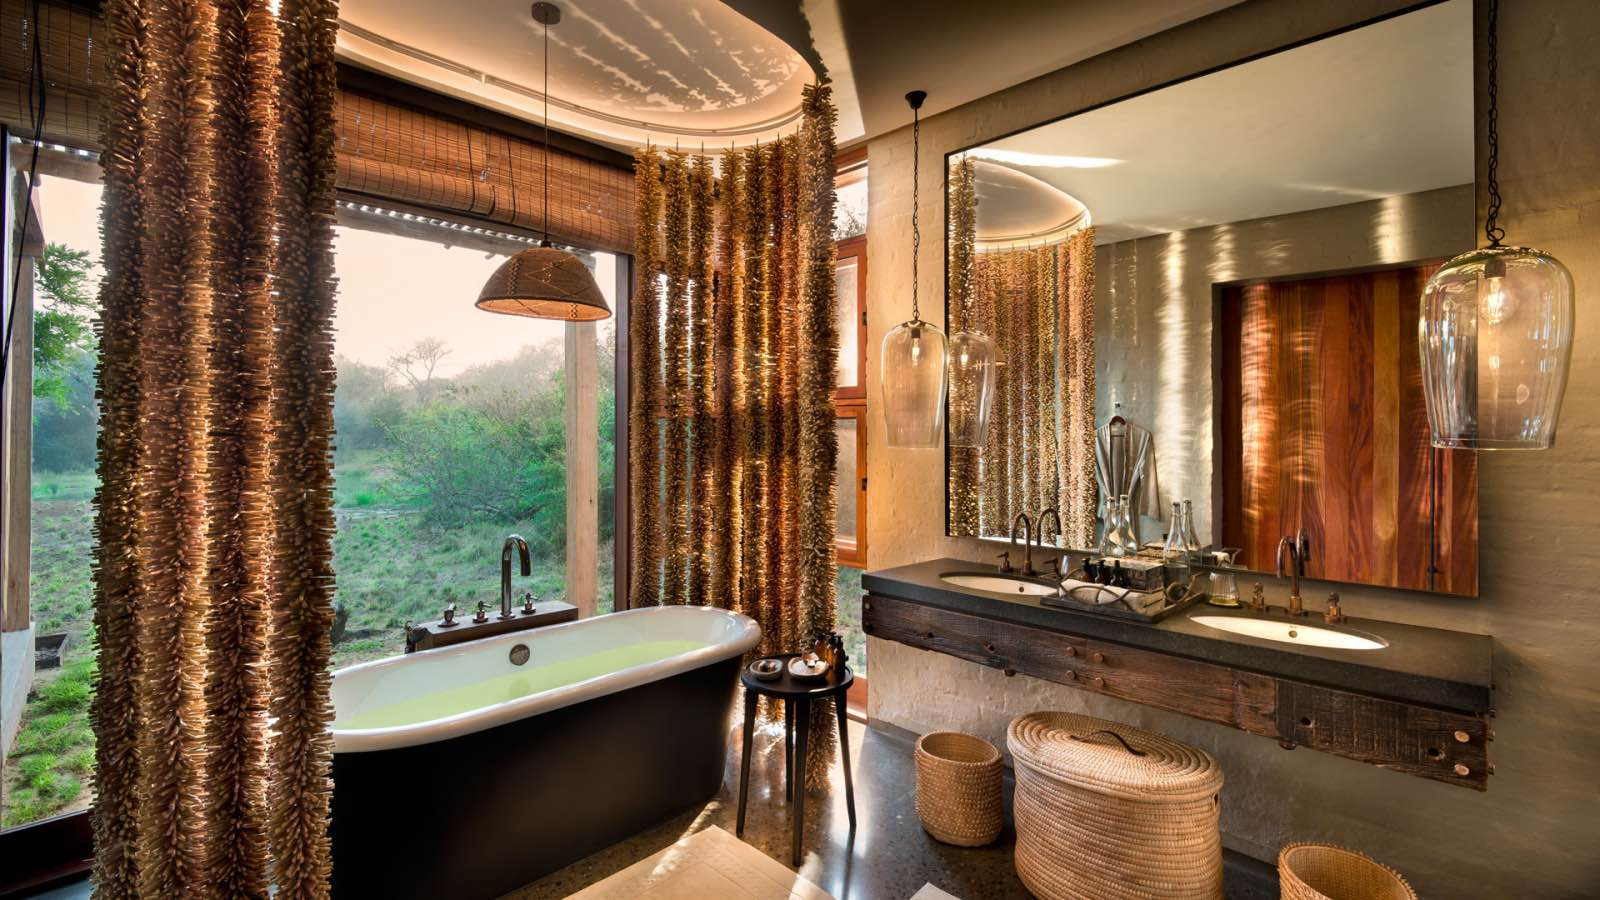 A bathtub with a view through big glass windows at Phinda Homestead